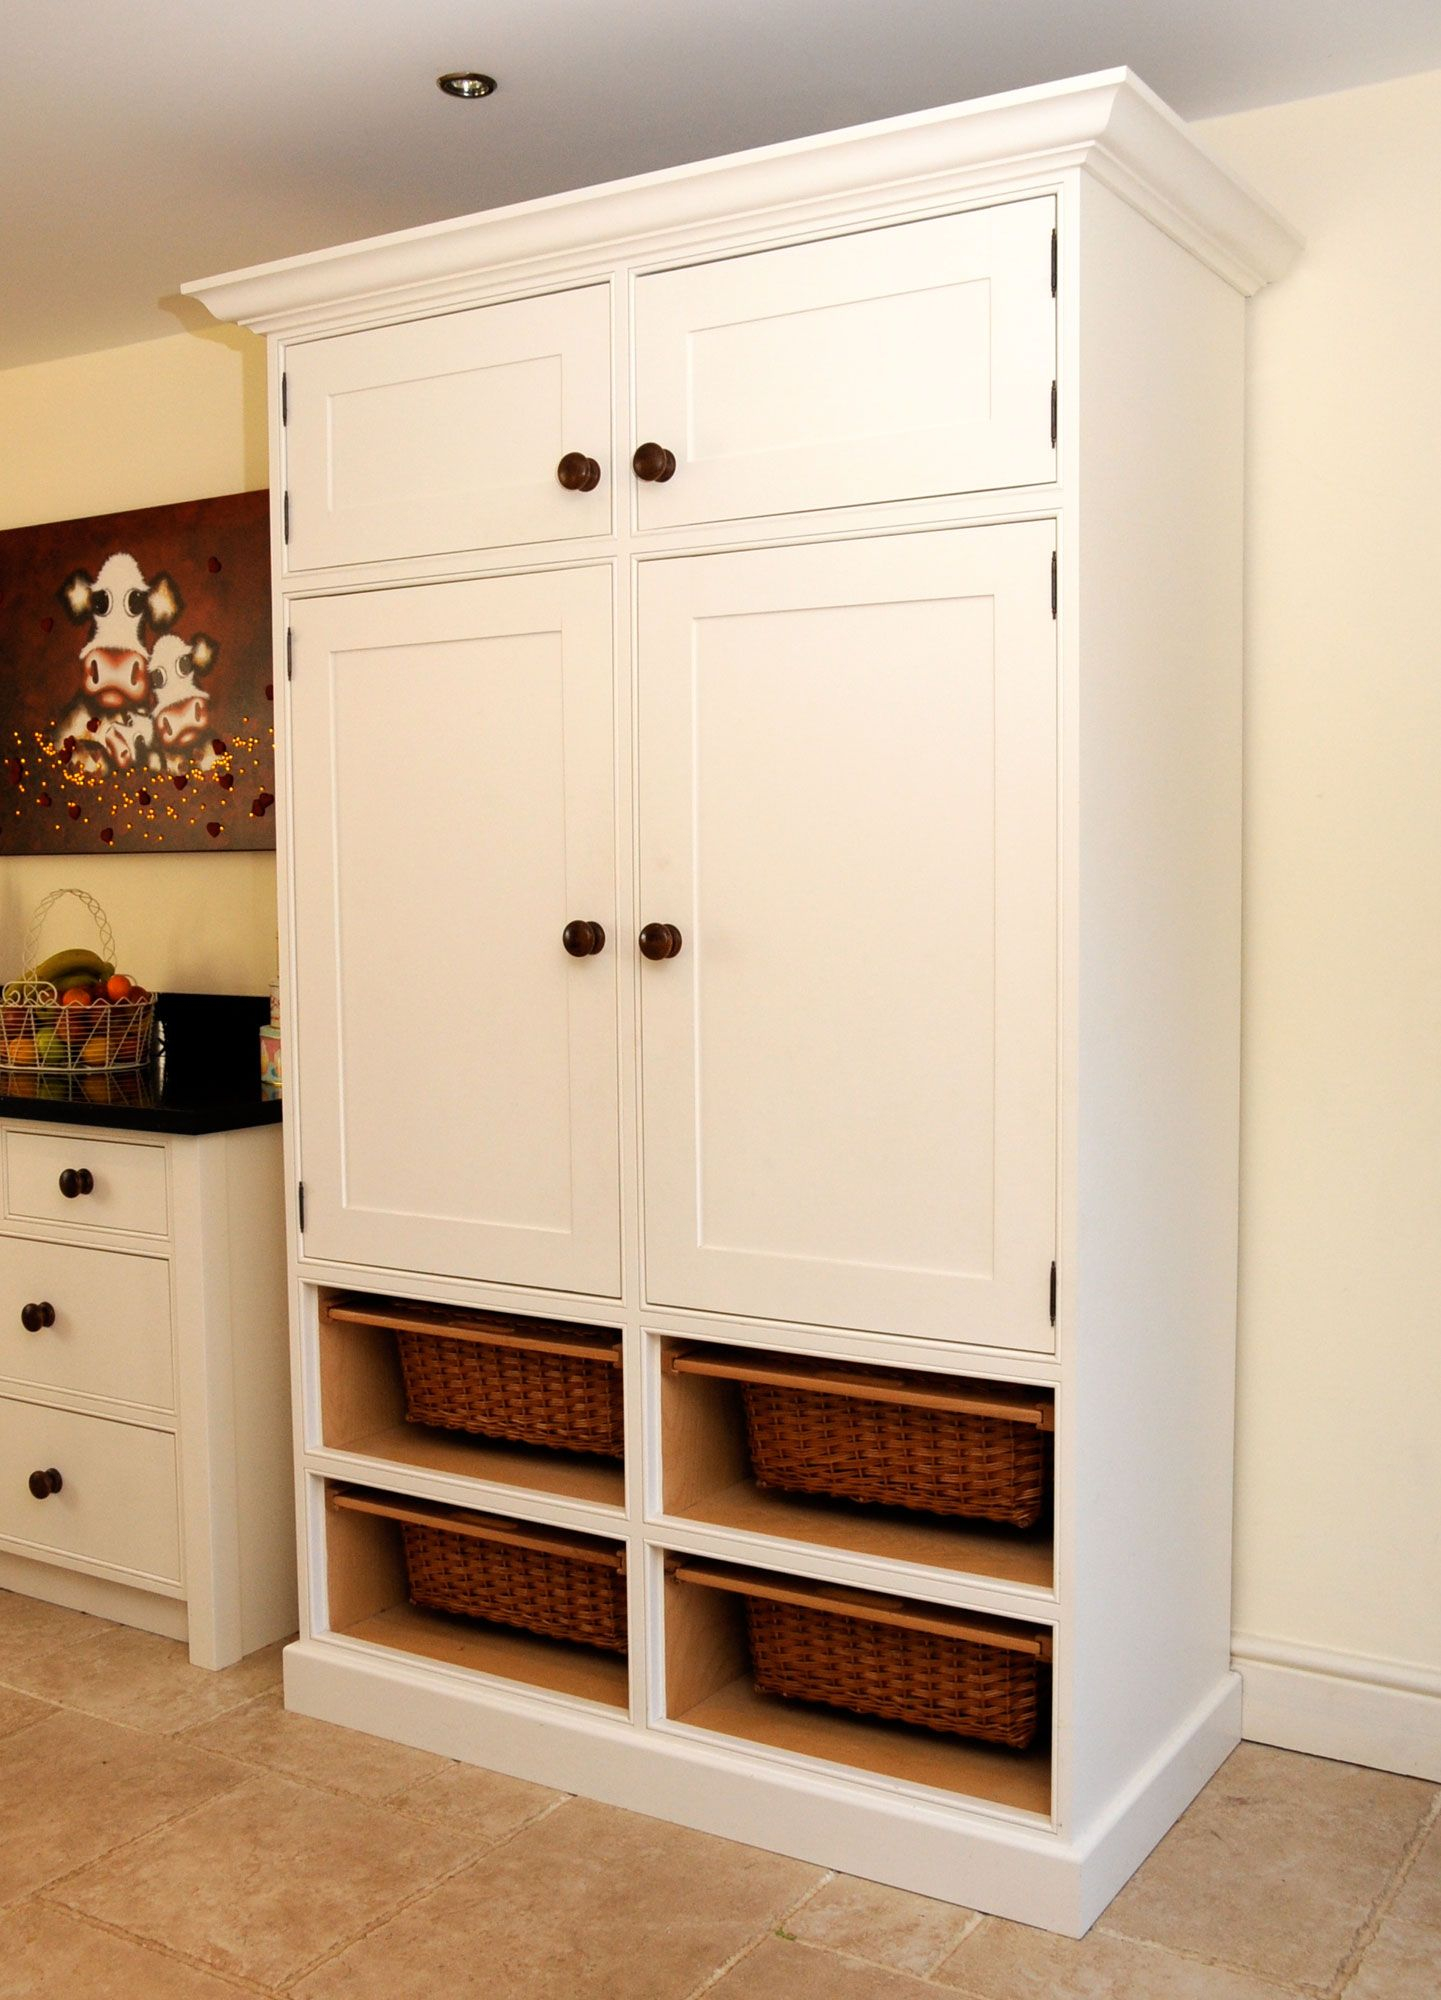 23 Efficient Free Standing Kitchen Cabinets Best Design For Every within size 1441 X 2000